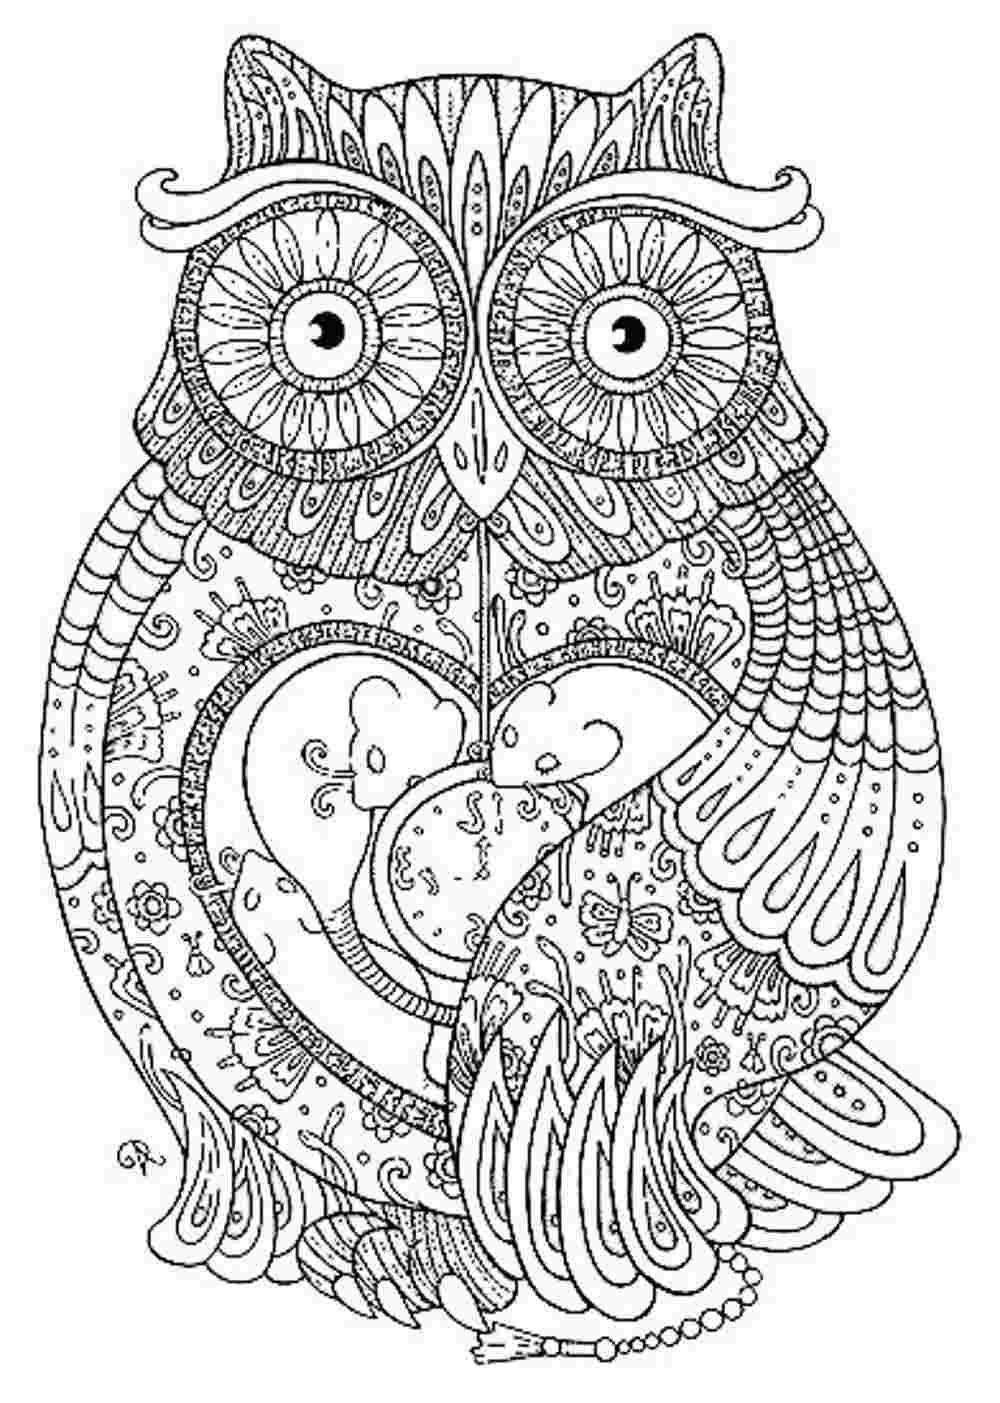 Animal Mandala Coloring Pages To Print